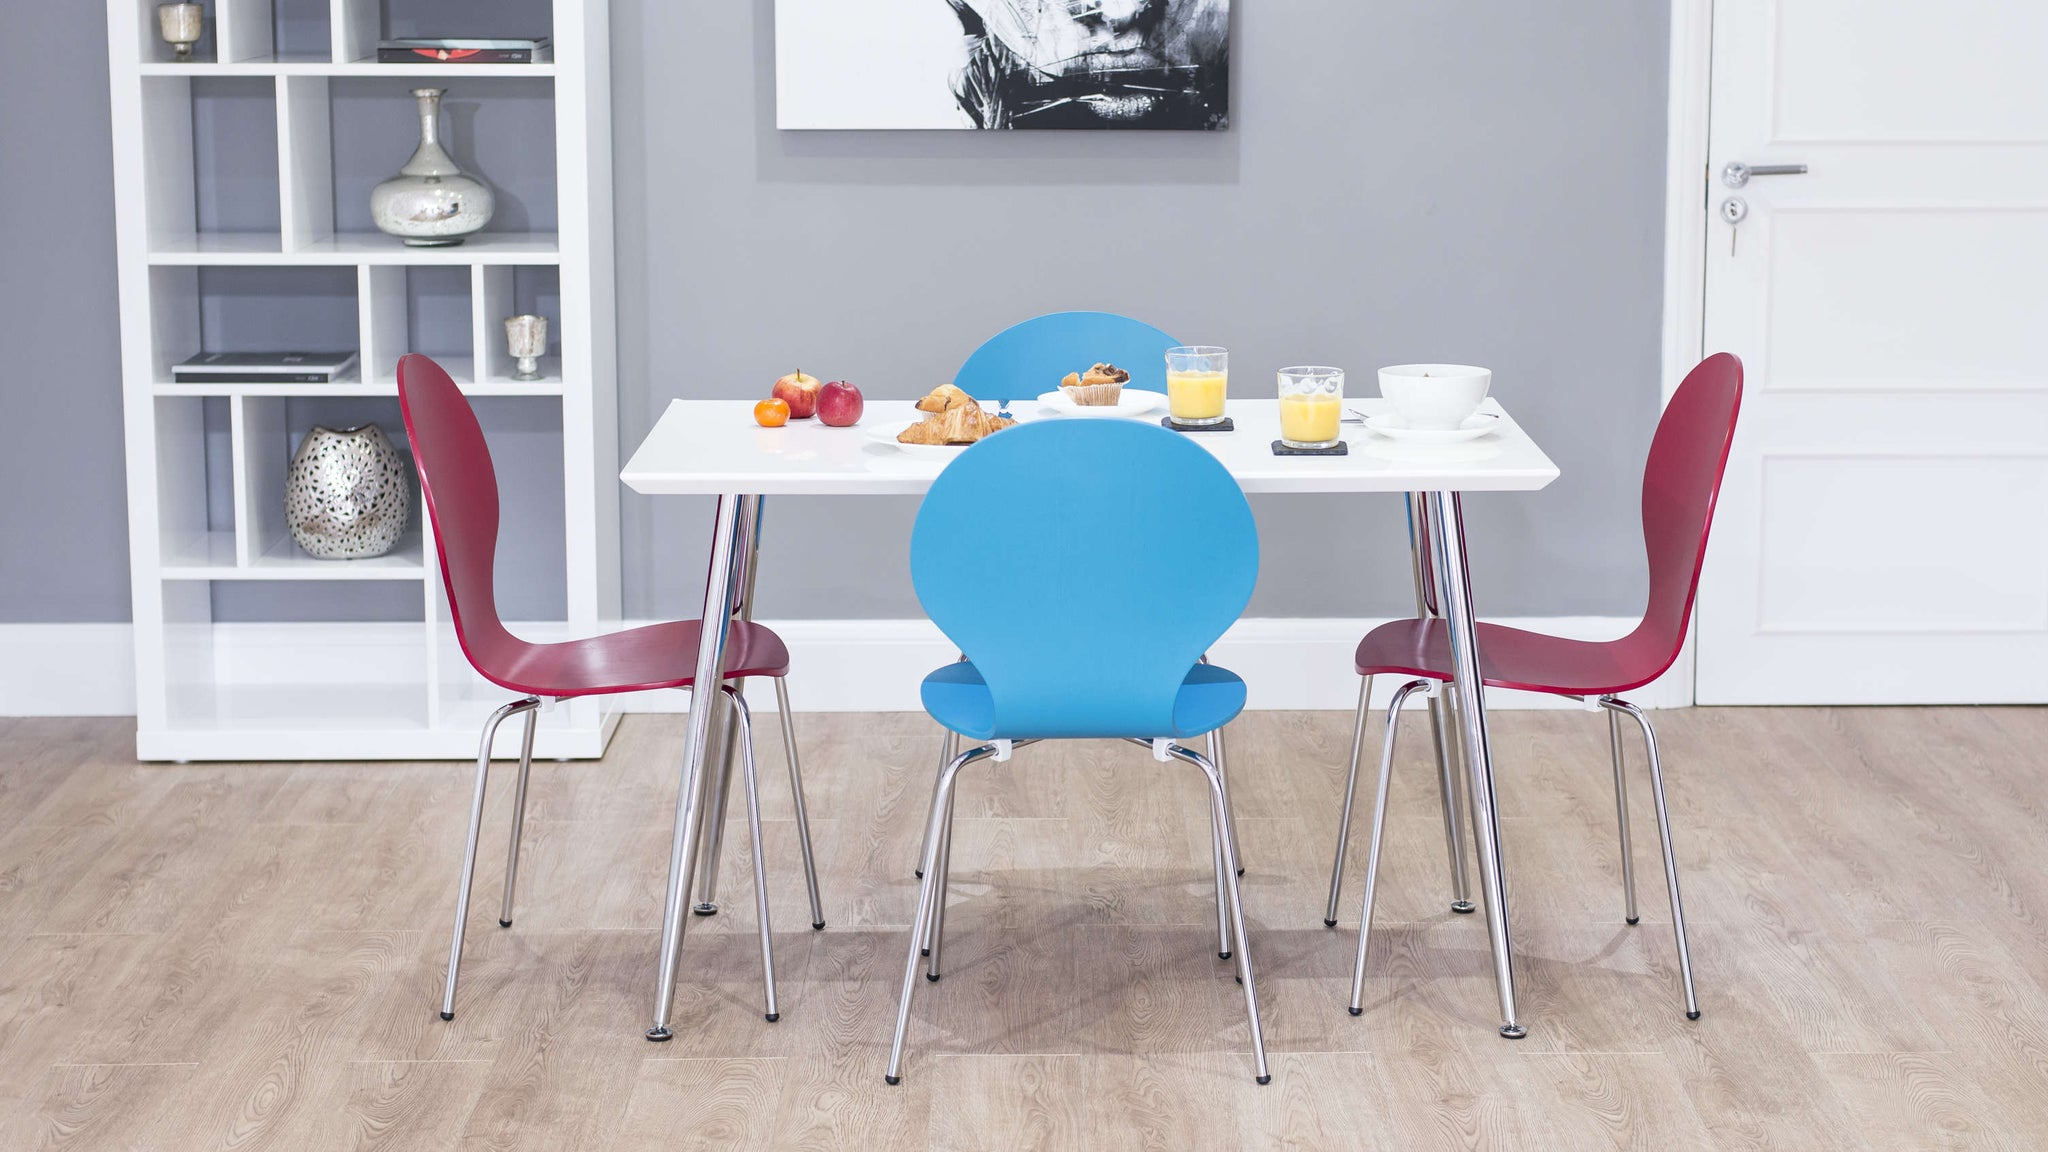 4 Seater Dining Table with Colourful Dining Chairs